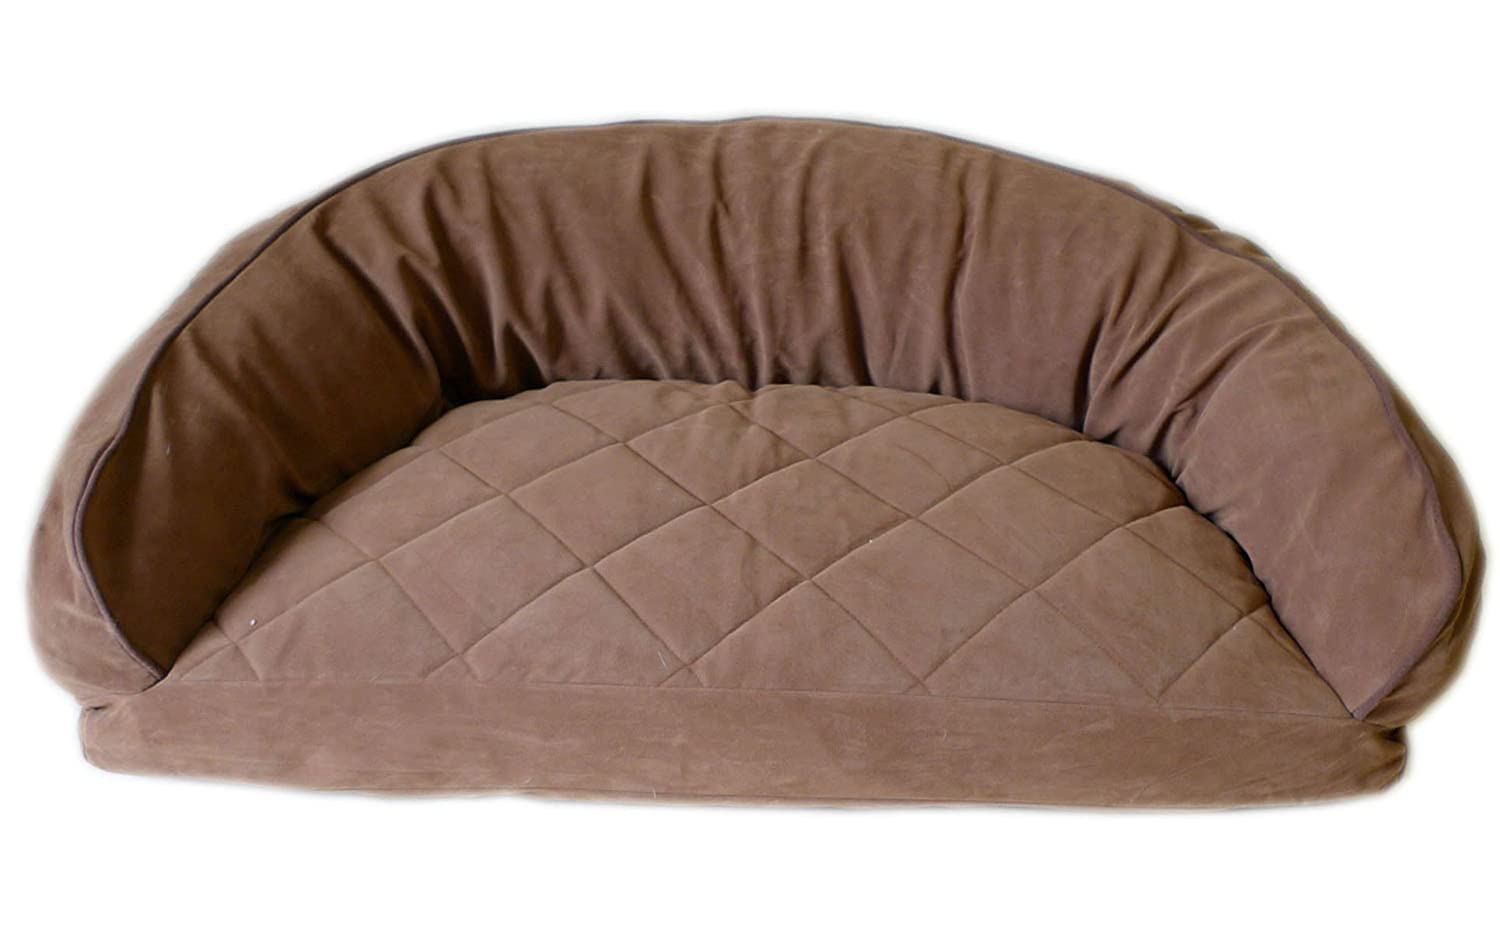 42 X 27 X 12\ Carolina Pet 02174 CPC Diamond Quilted Semi Circle Saddle Lounge for Dogs and Cats with Chocolate Piping, 42 X 27 X 12, Green